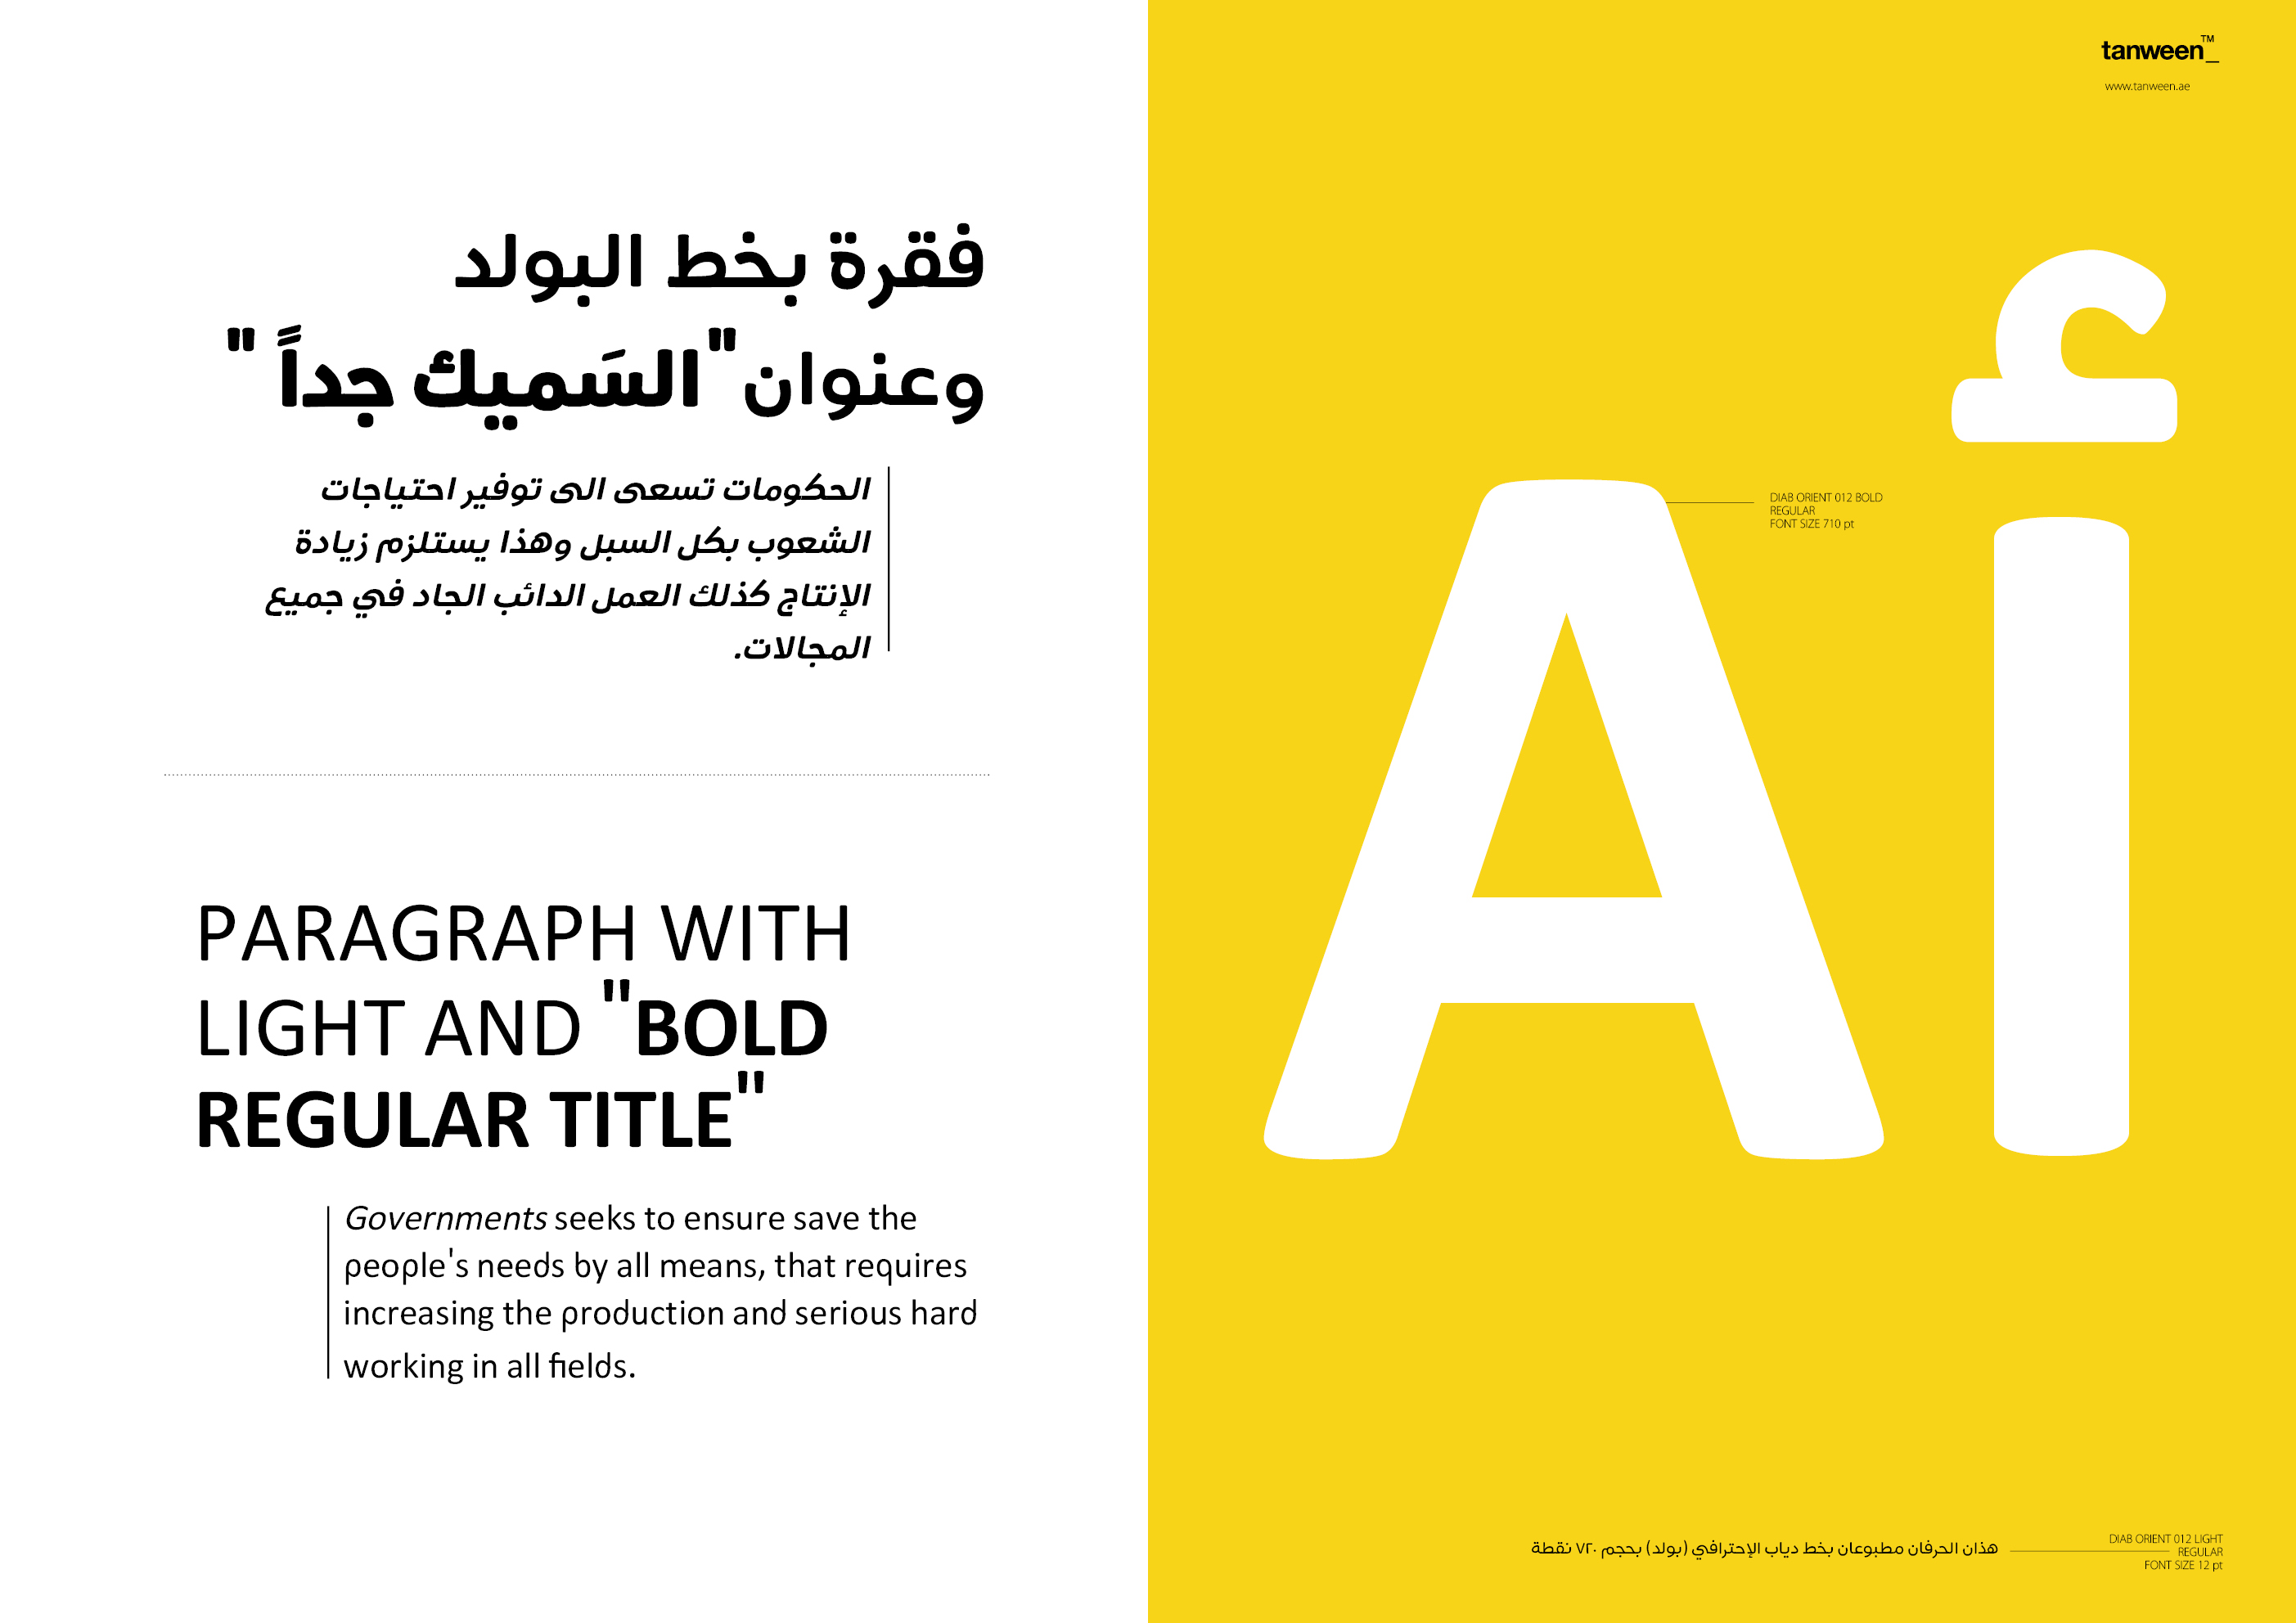 Diab Orient 018 Collection/18 font example image 18